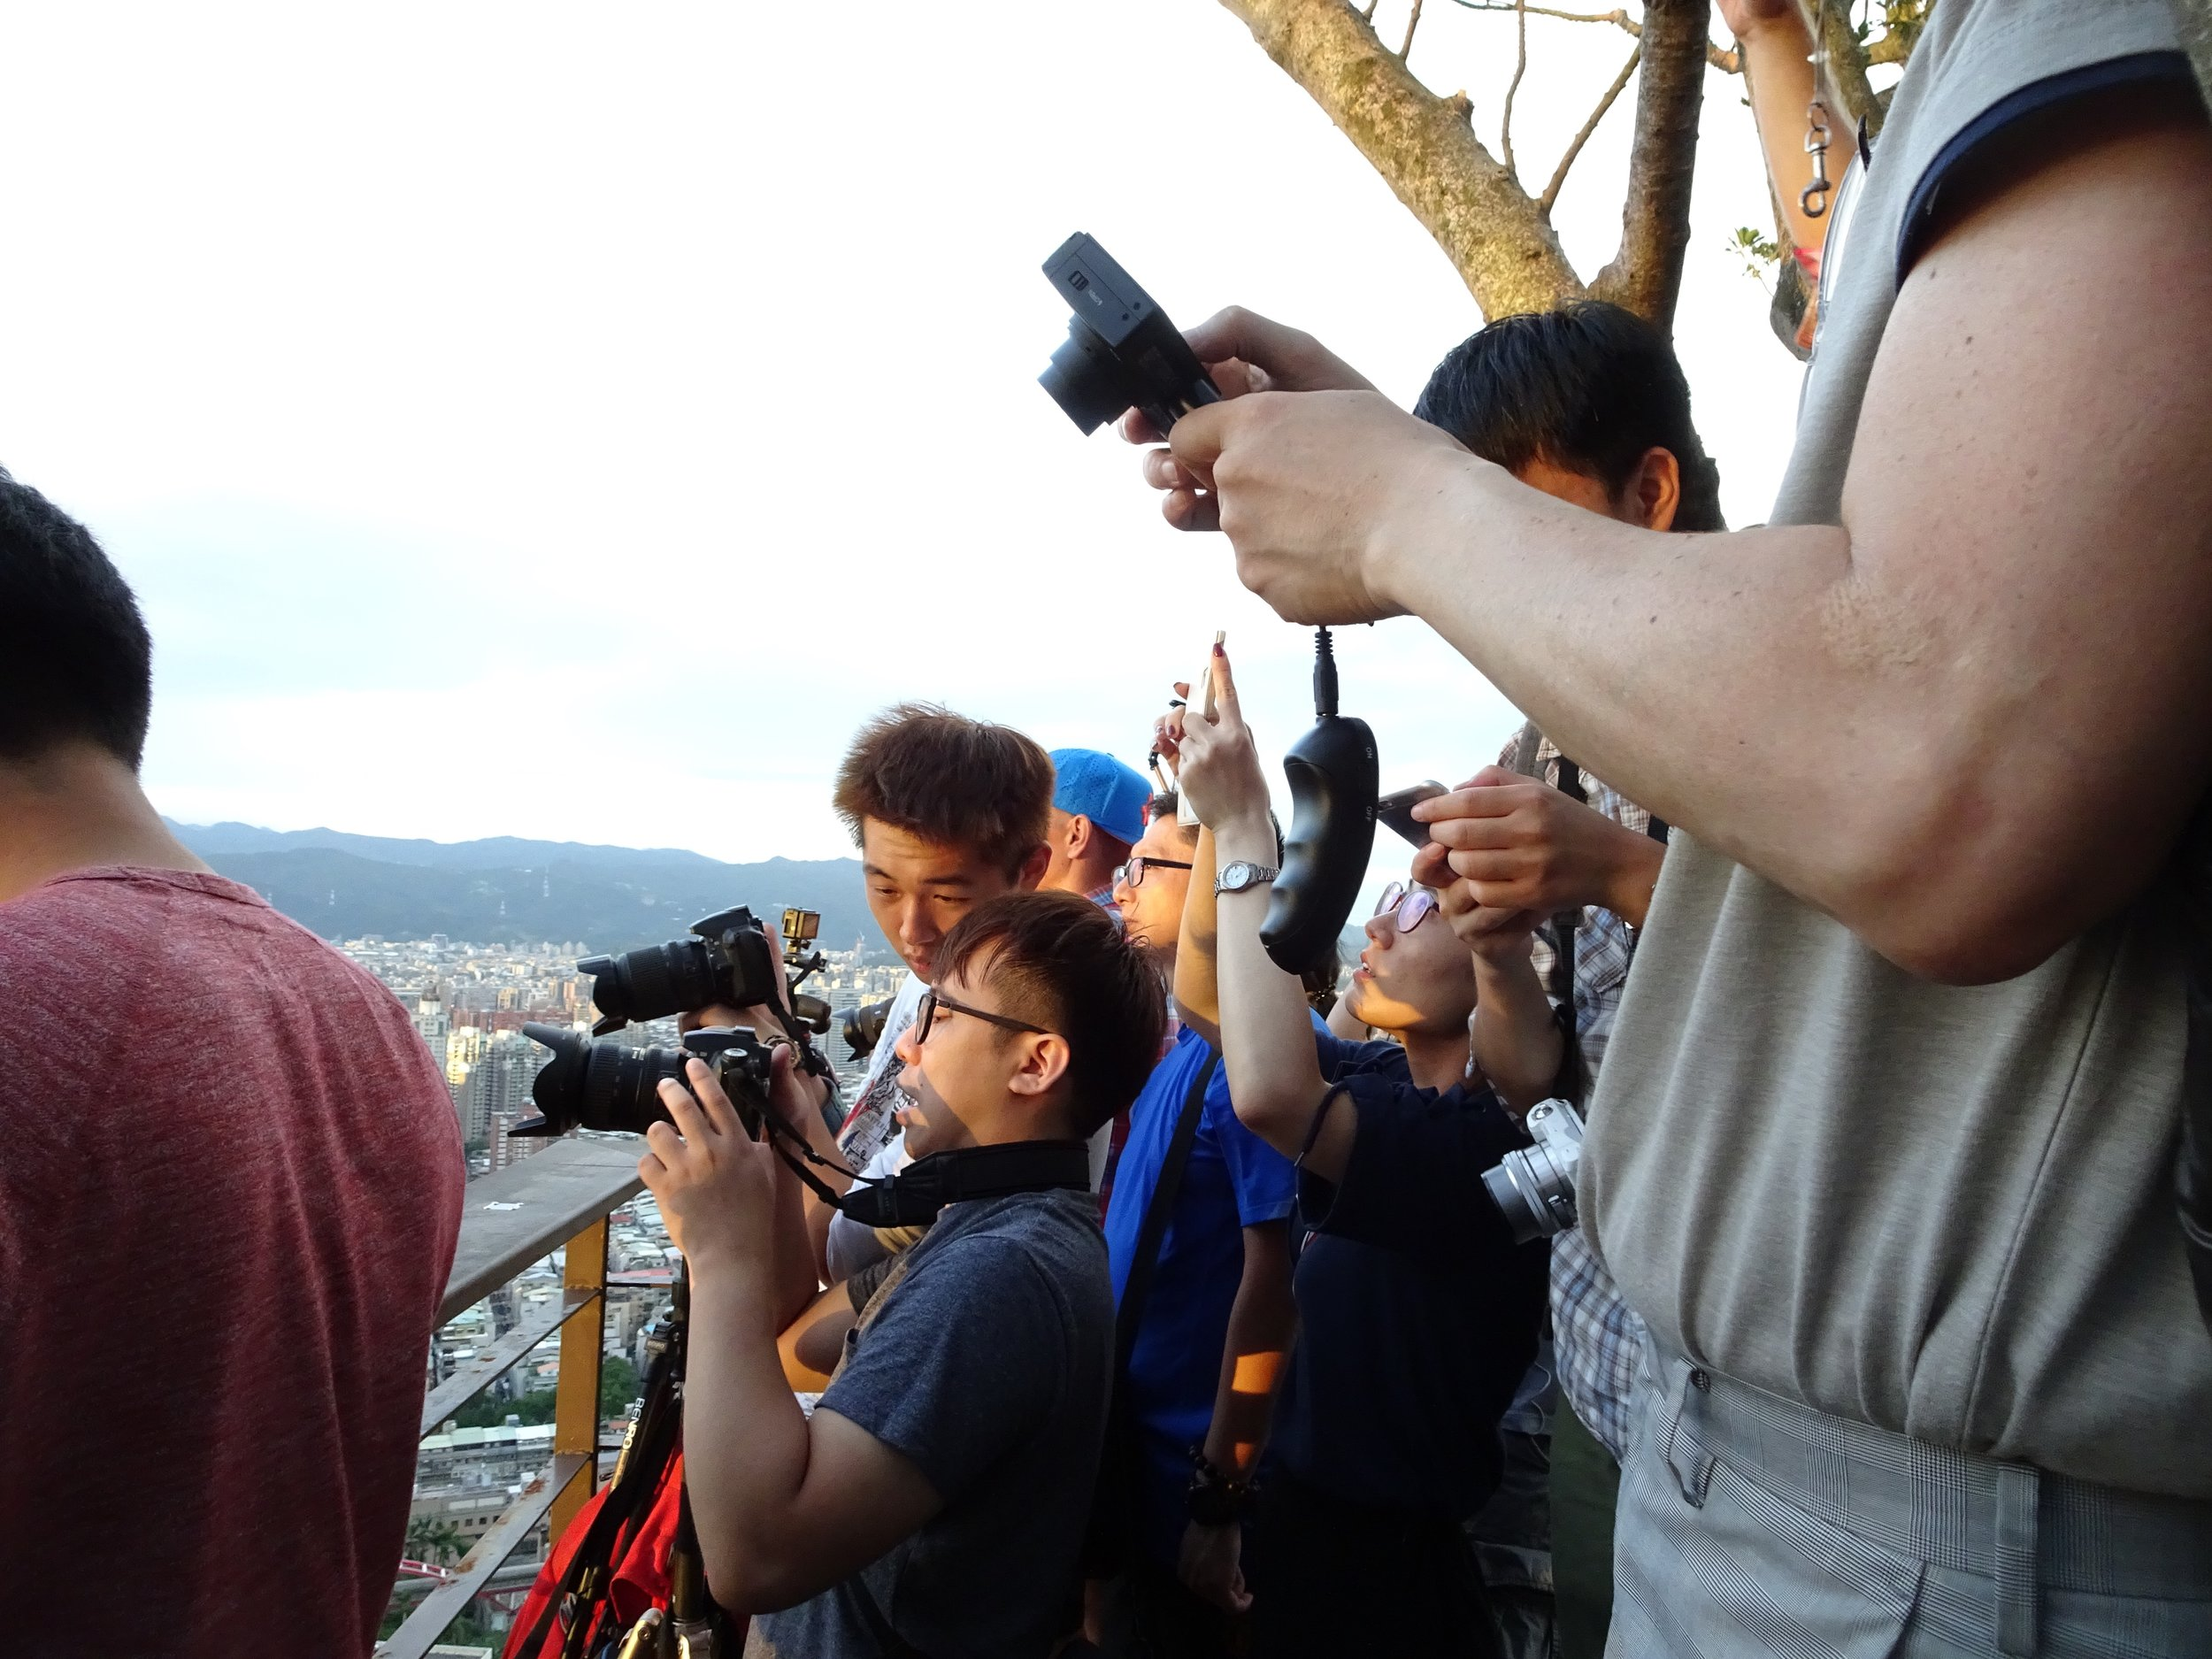 ...and the people enjoying the view, taipei, taiwan - m.quigley